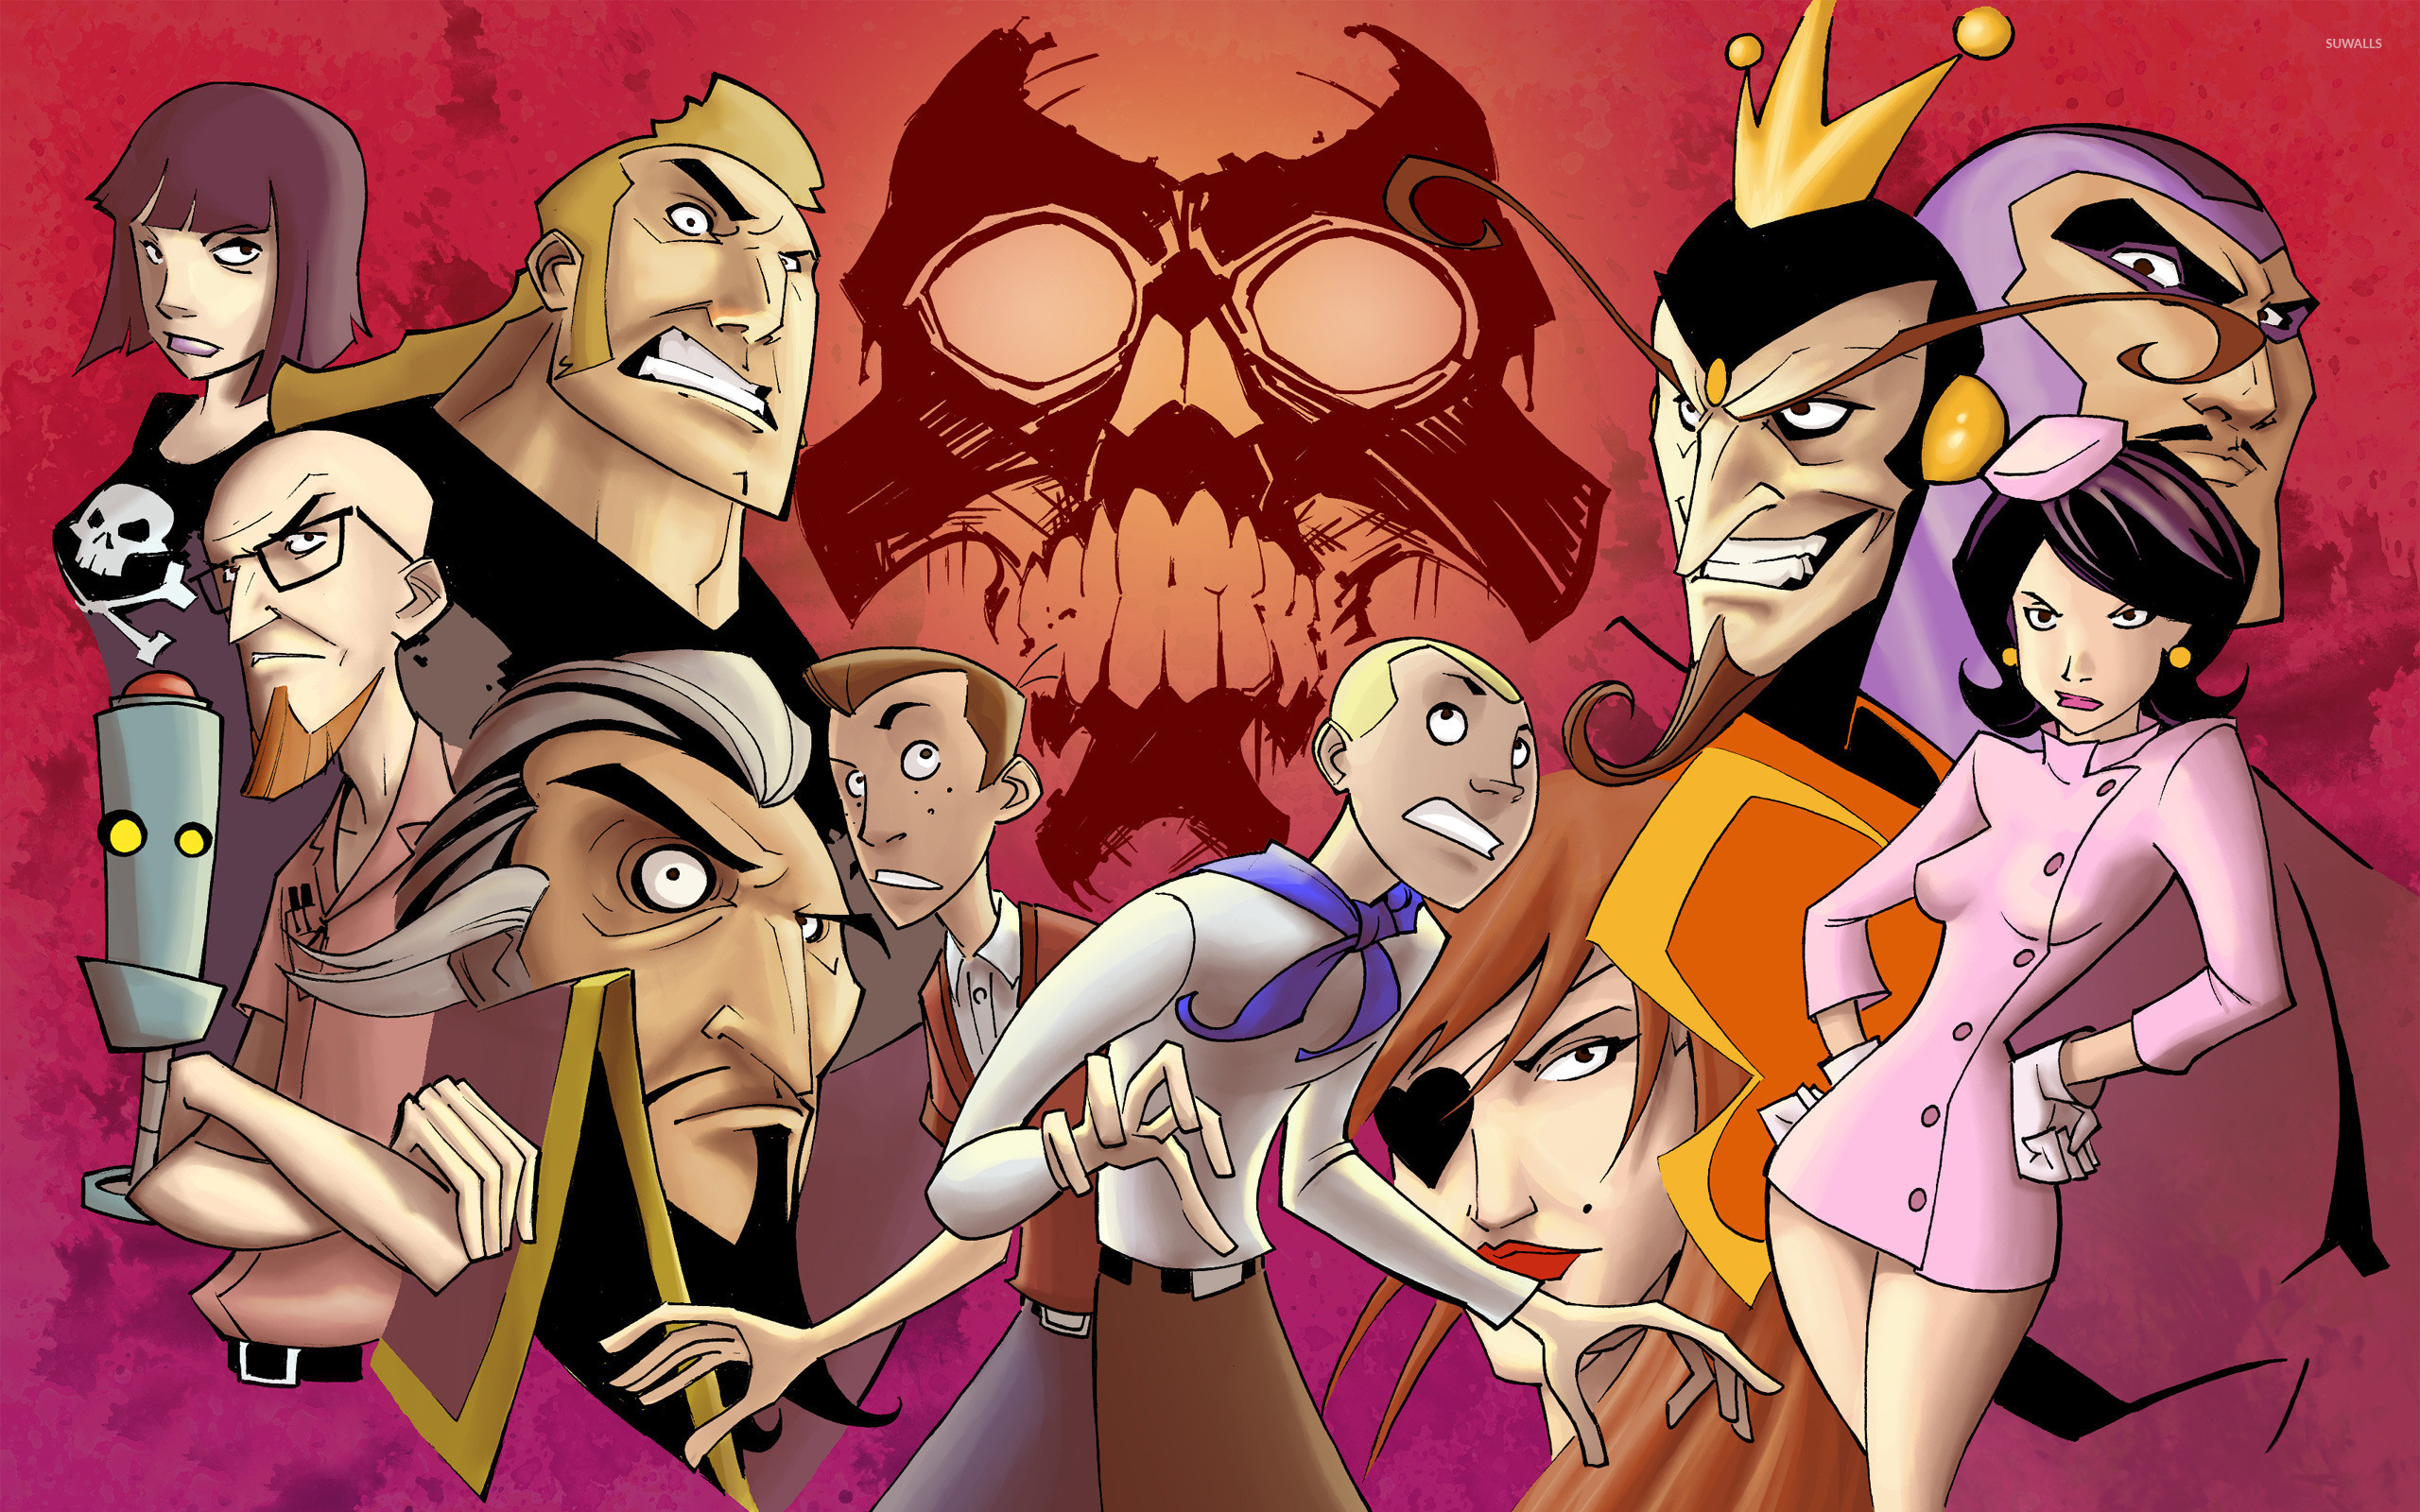 2560x1600 The Venture Bros. wallpaper